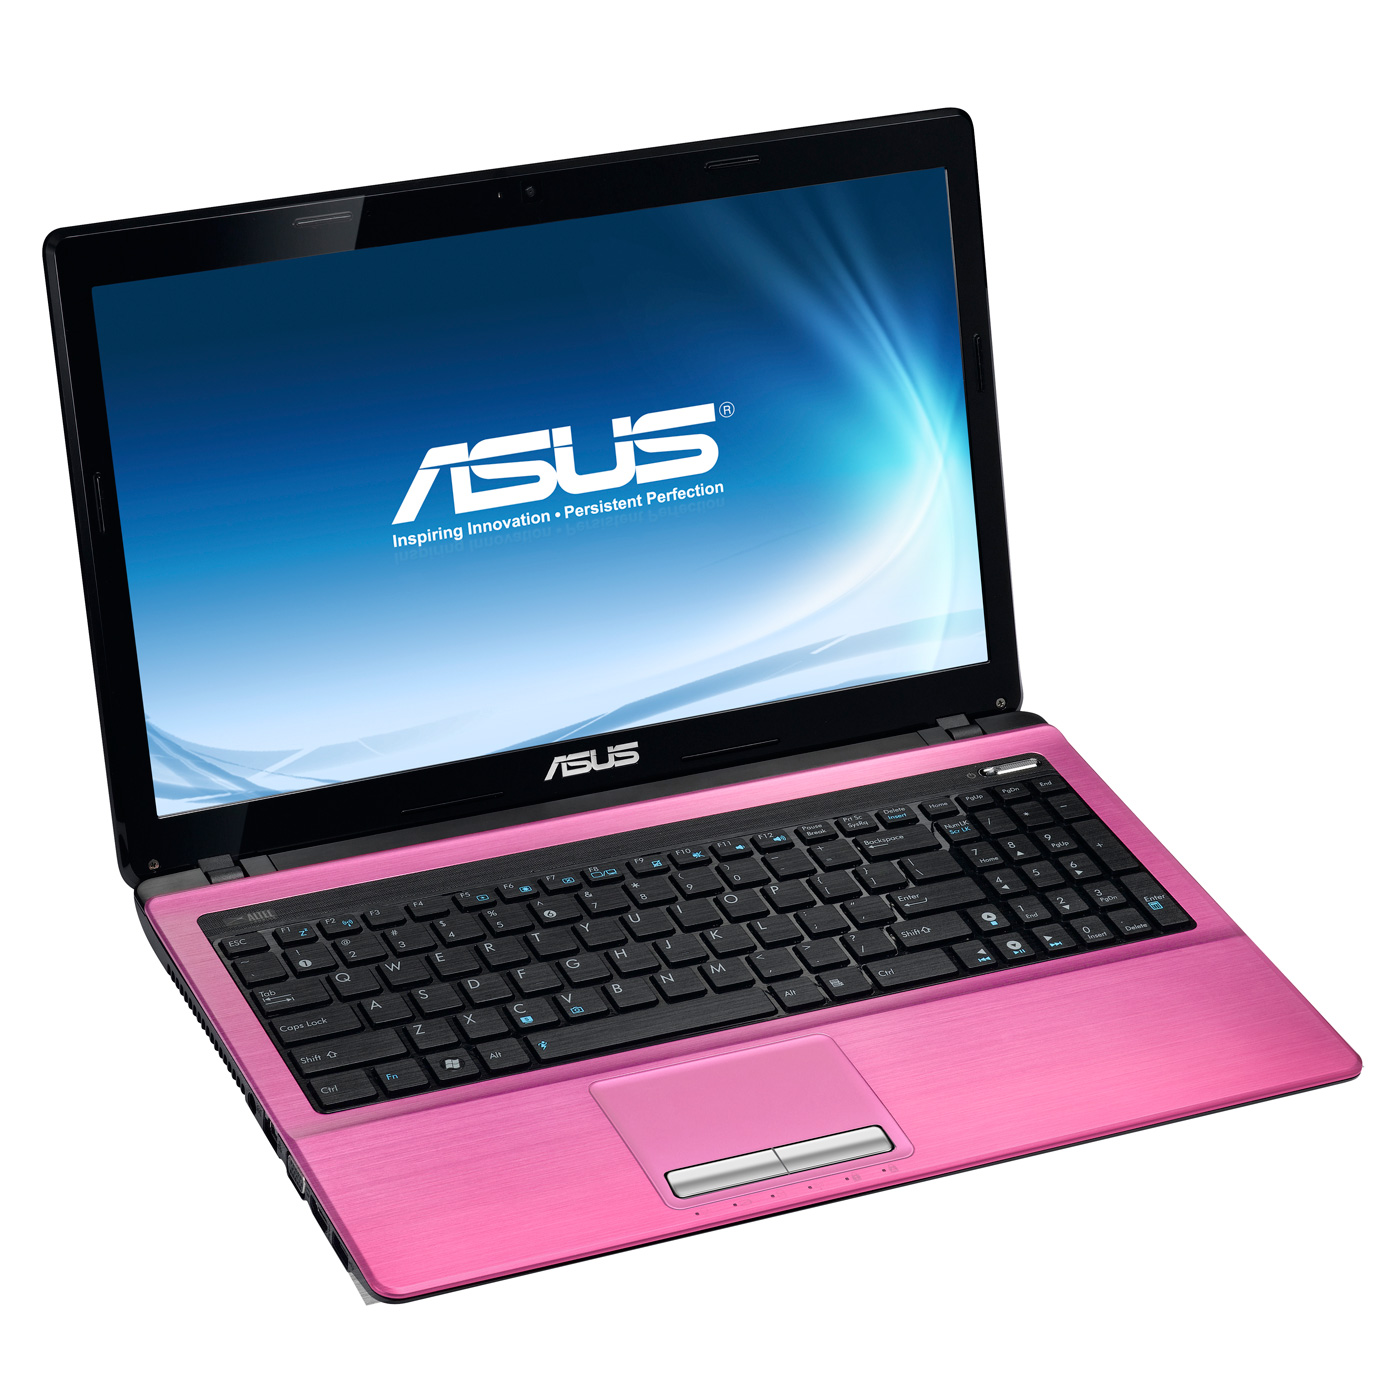 asus k53sd sx327v rose pc portable asus sur ldlc. Black Bedroom Furniture Sets. Home Design Ideas